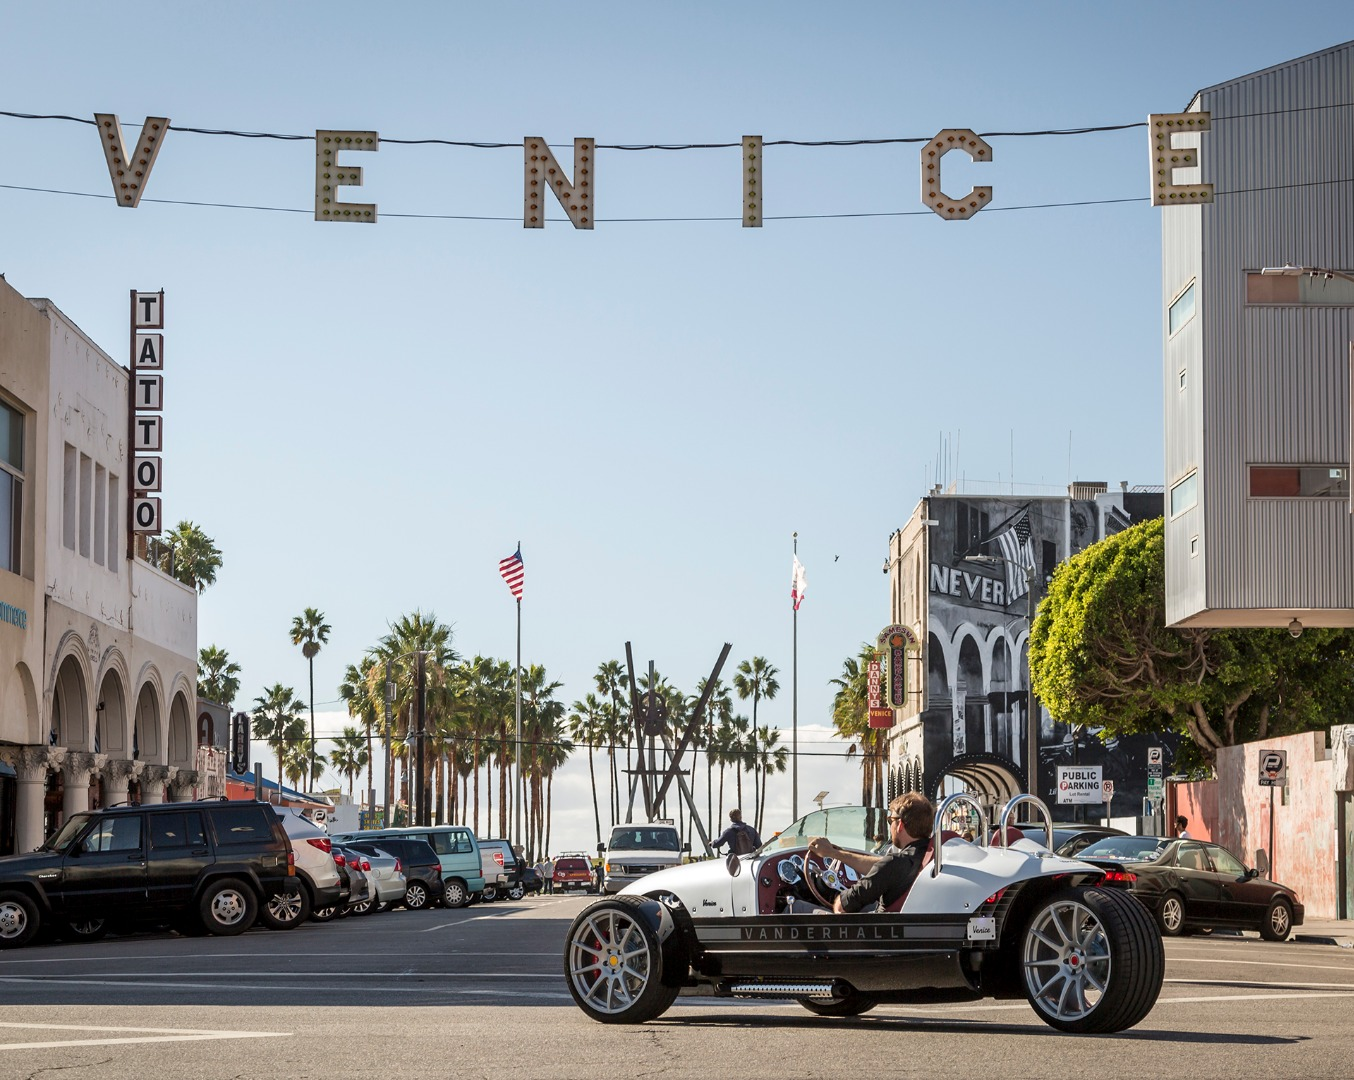 5 Things You Probably Never Expected From the Vanderhall Venice ...